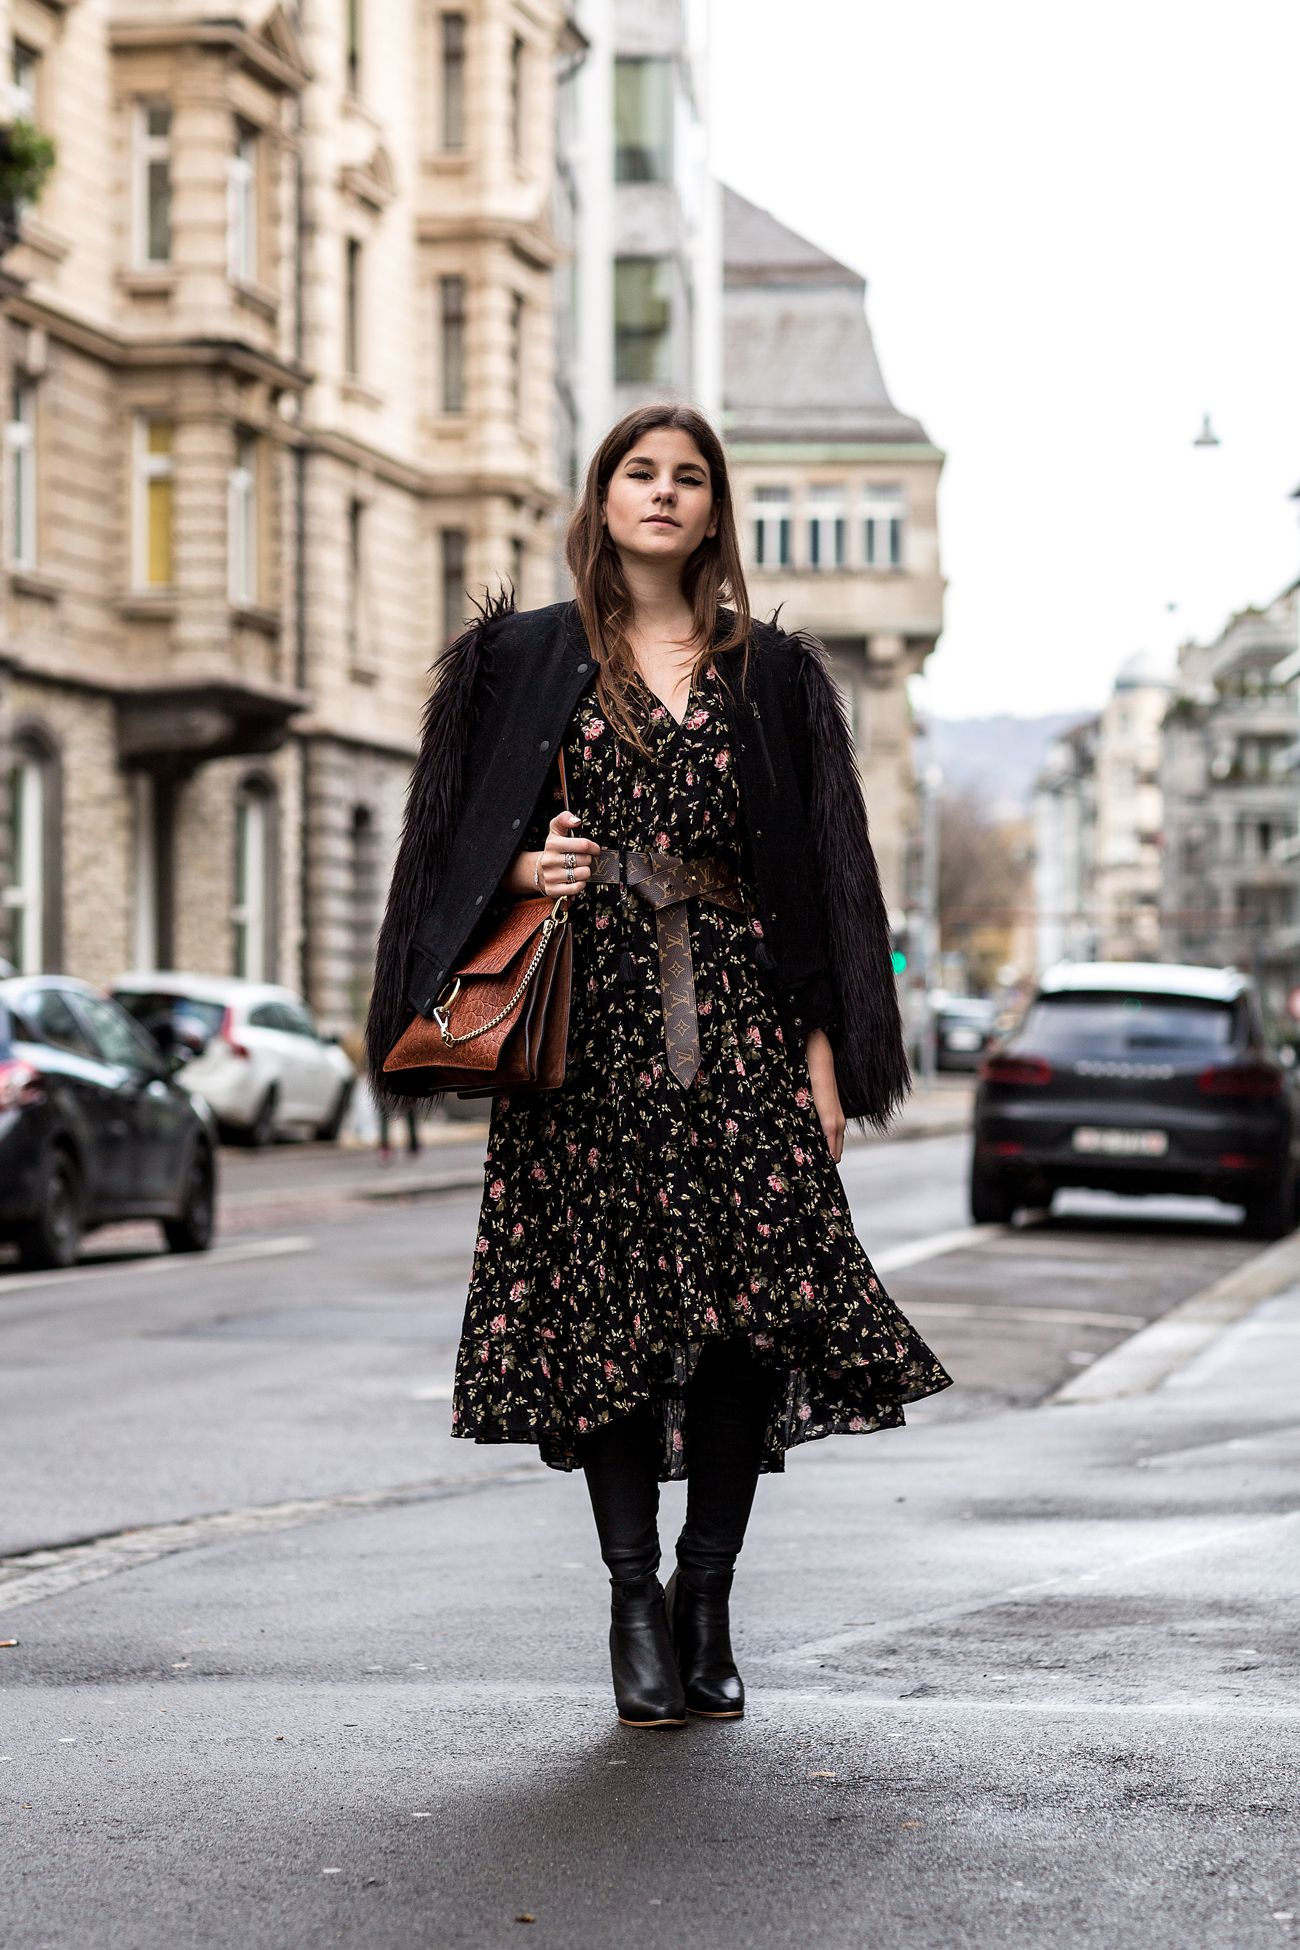 25 Reasons To Forget Seasonal Rules And Wear Florals During Winter Floral Dress Outfits Winter Dresses Winter Dress Outfits [ 1950 x 1300 Pixel ]